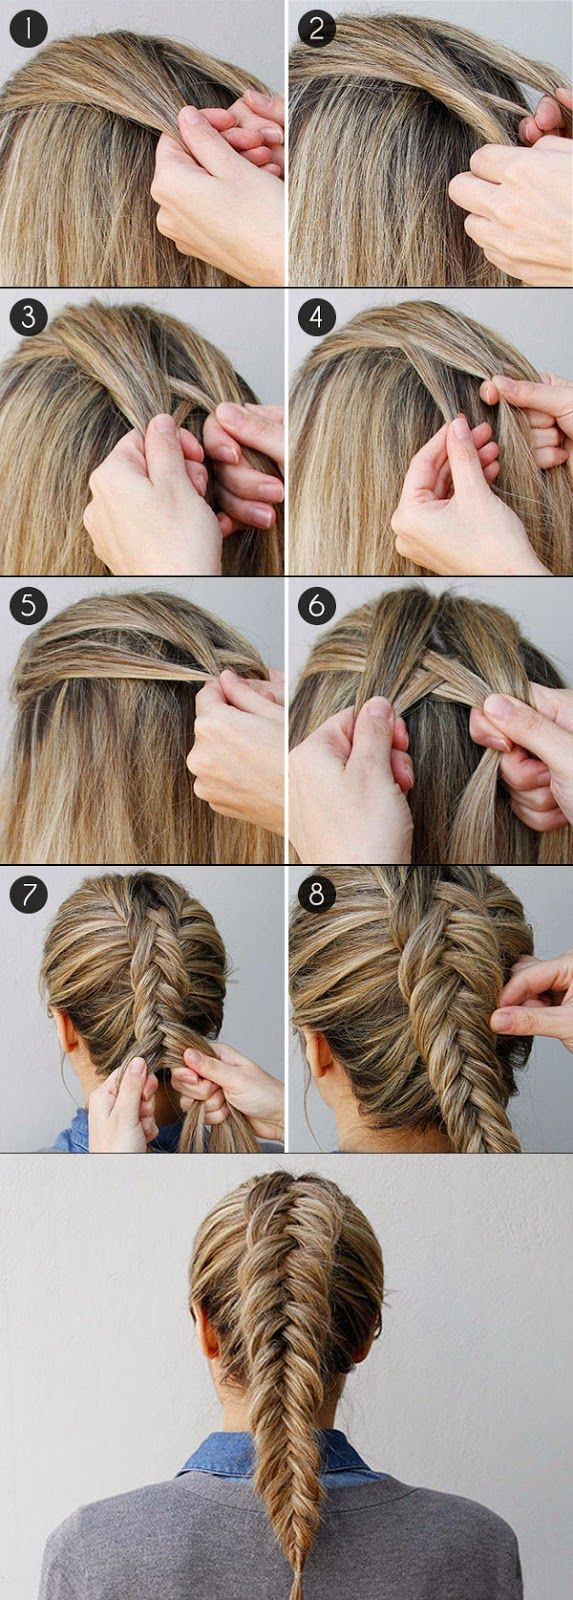 how to french braid own hair - photo #27